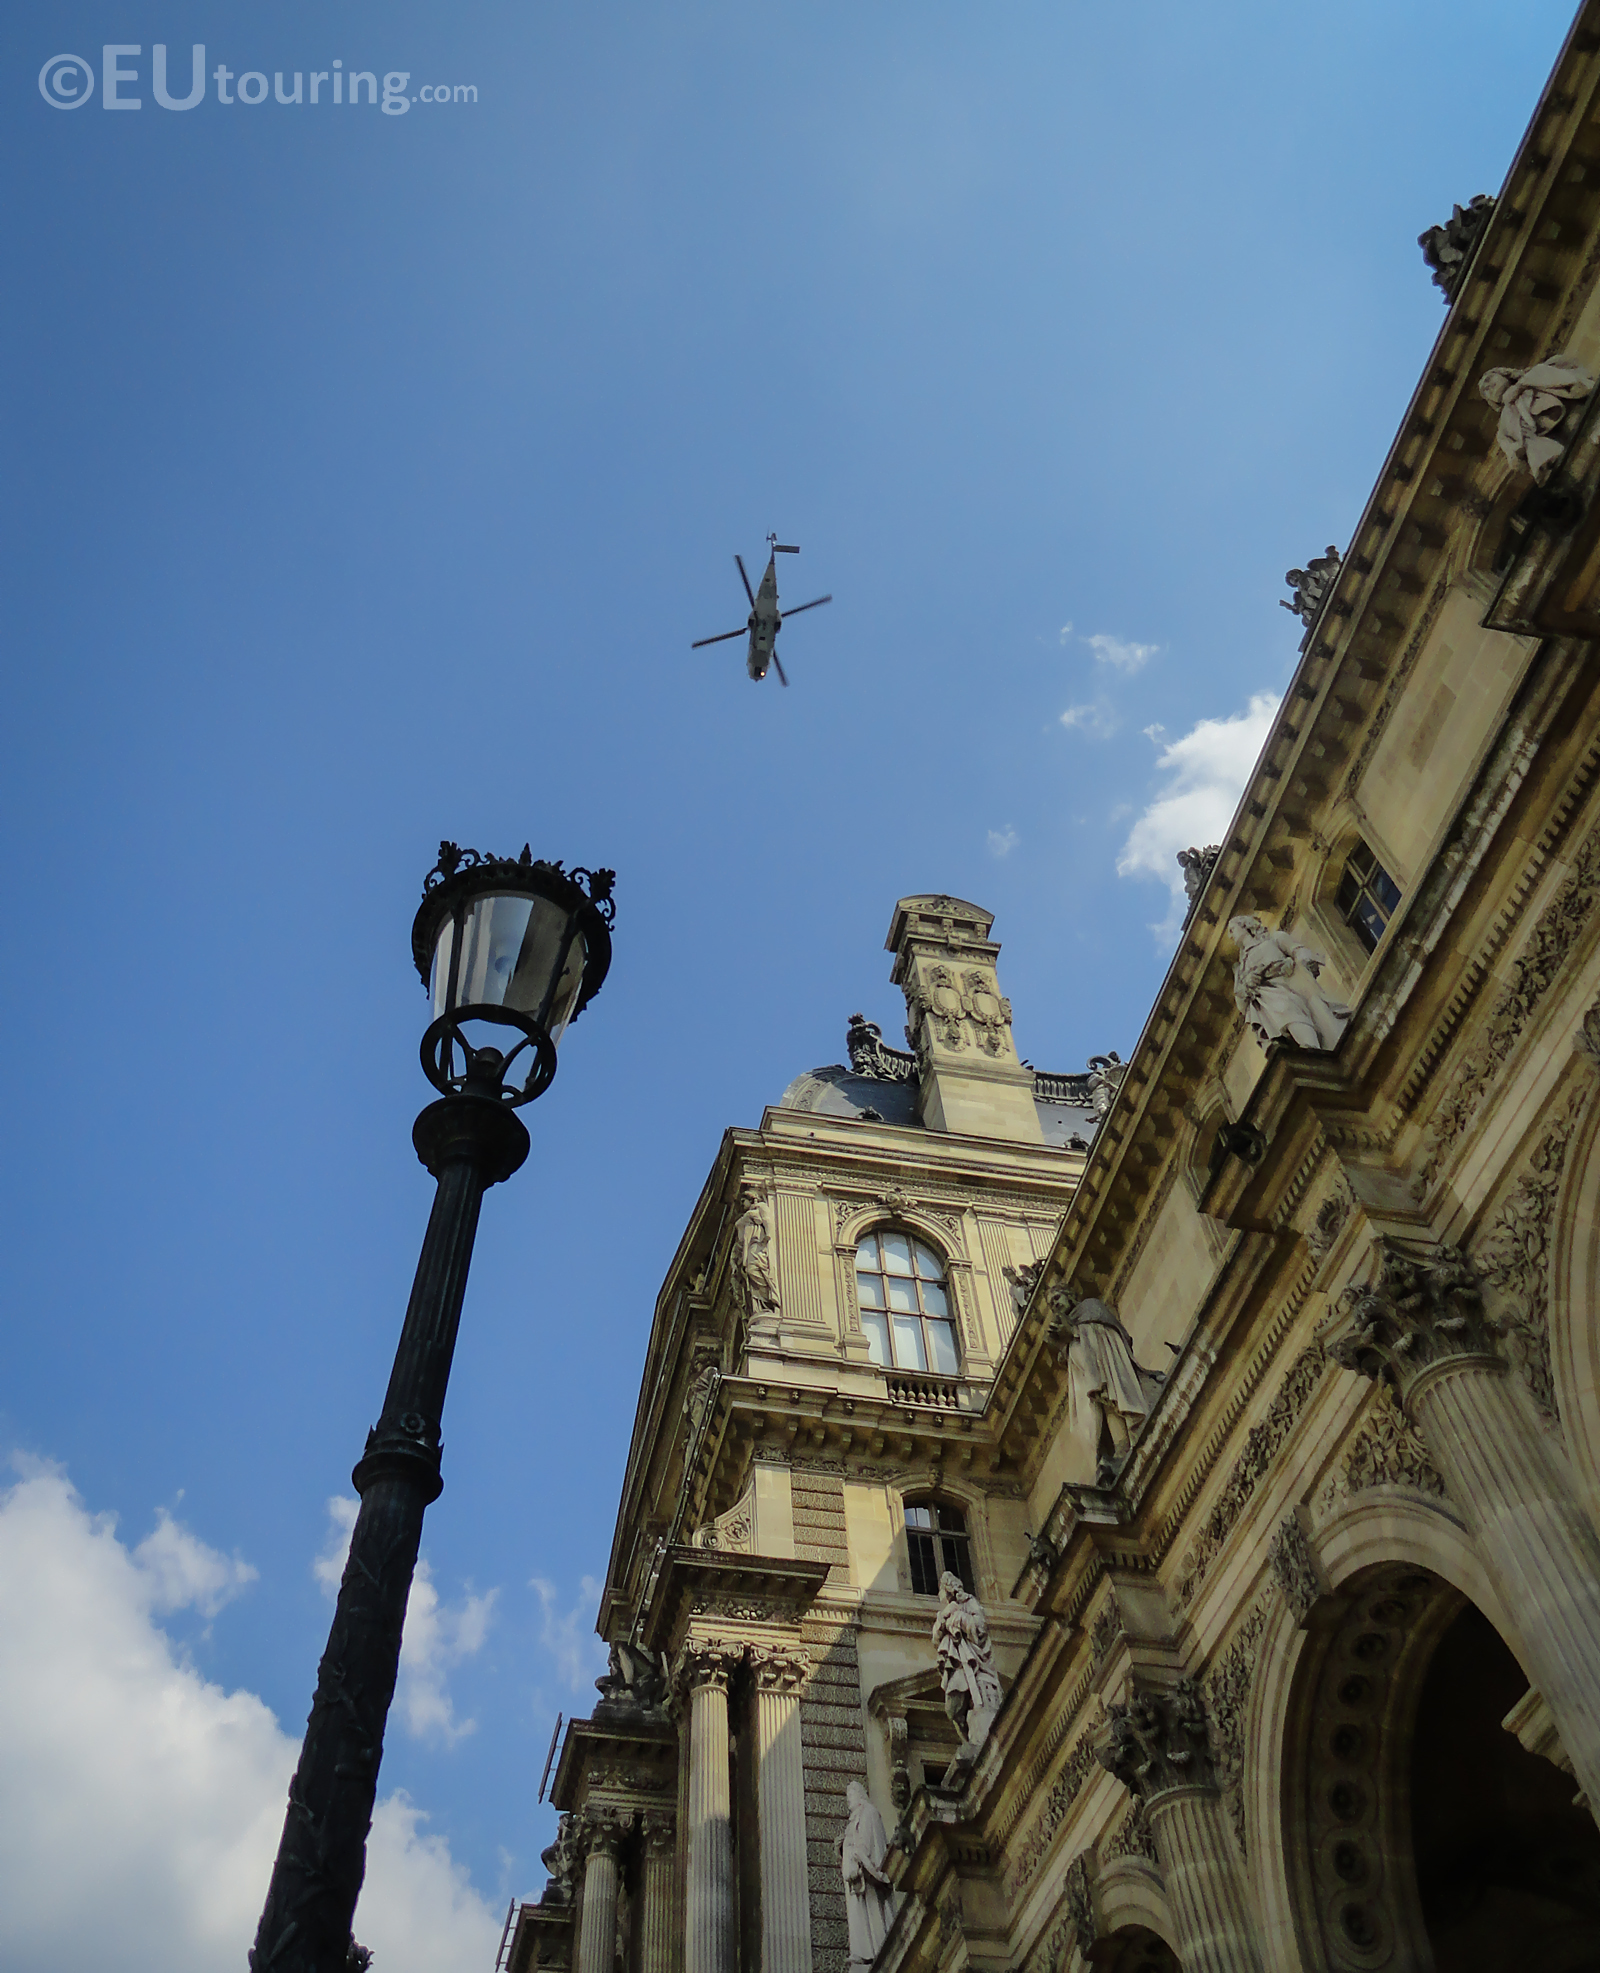 Helicopter passing over architecture of the Louvre